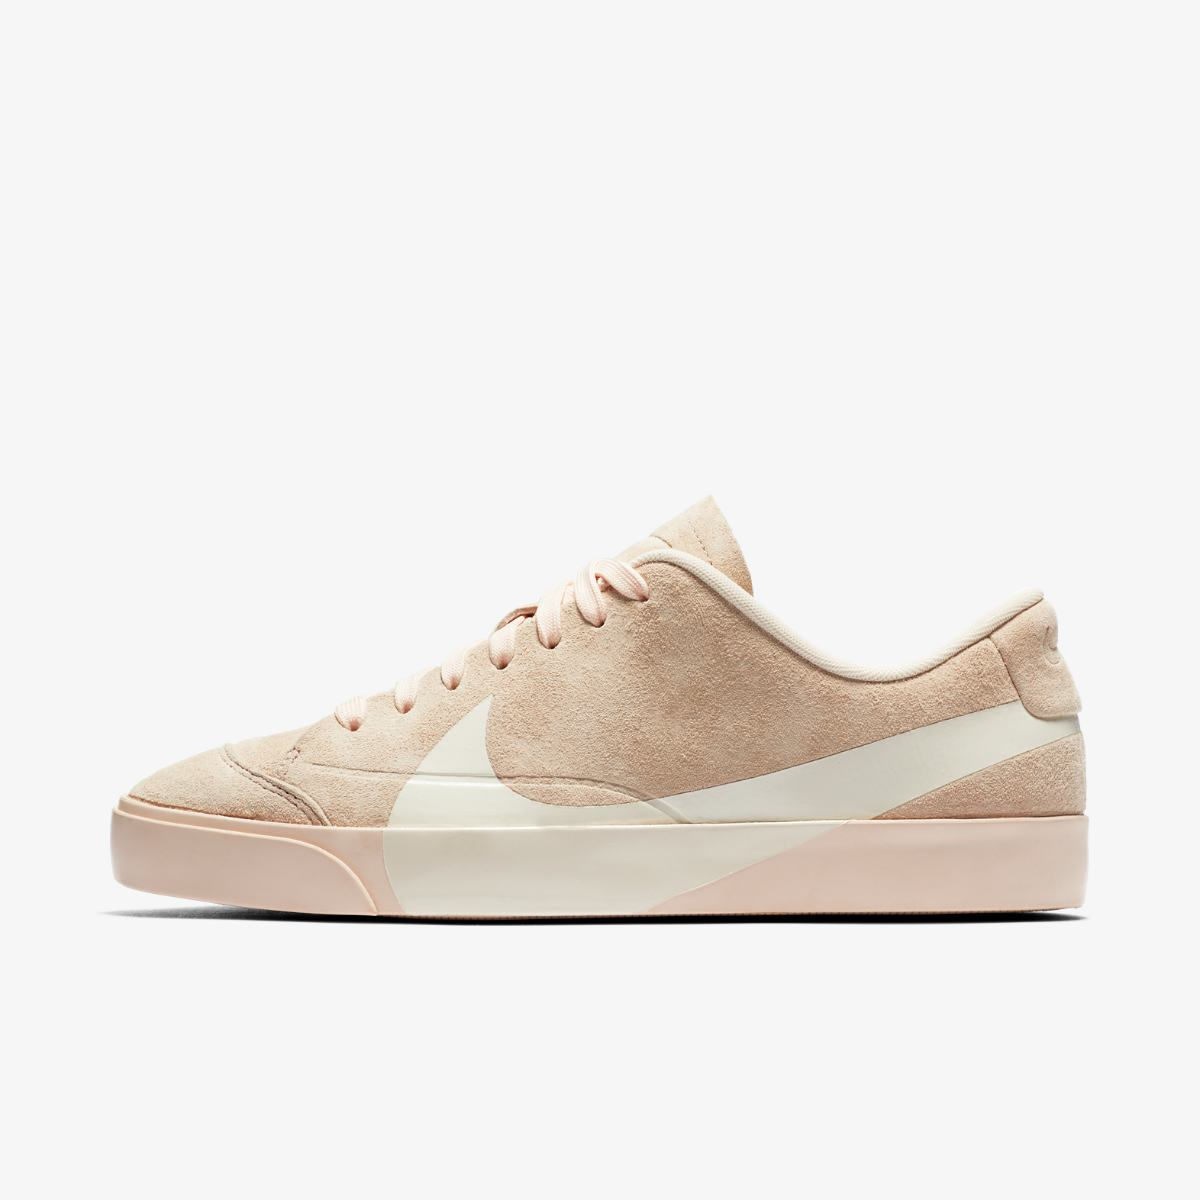 Кроссовки NIKE Blazer City Low LX